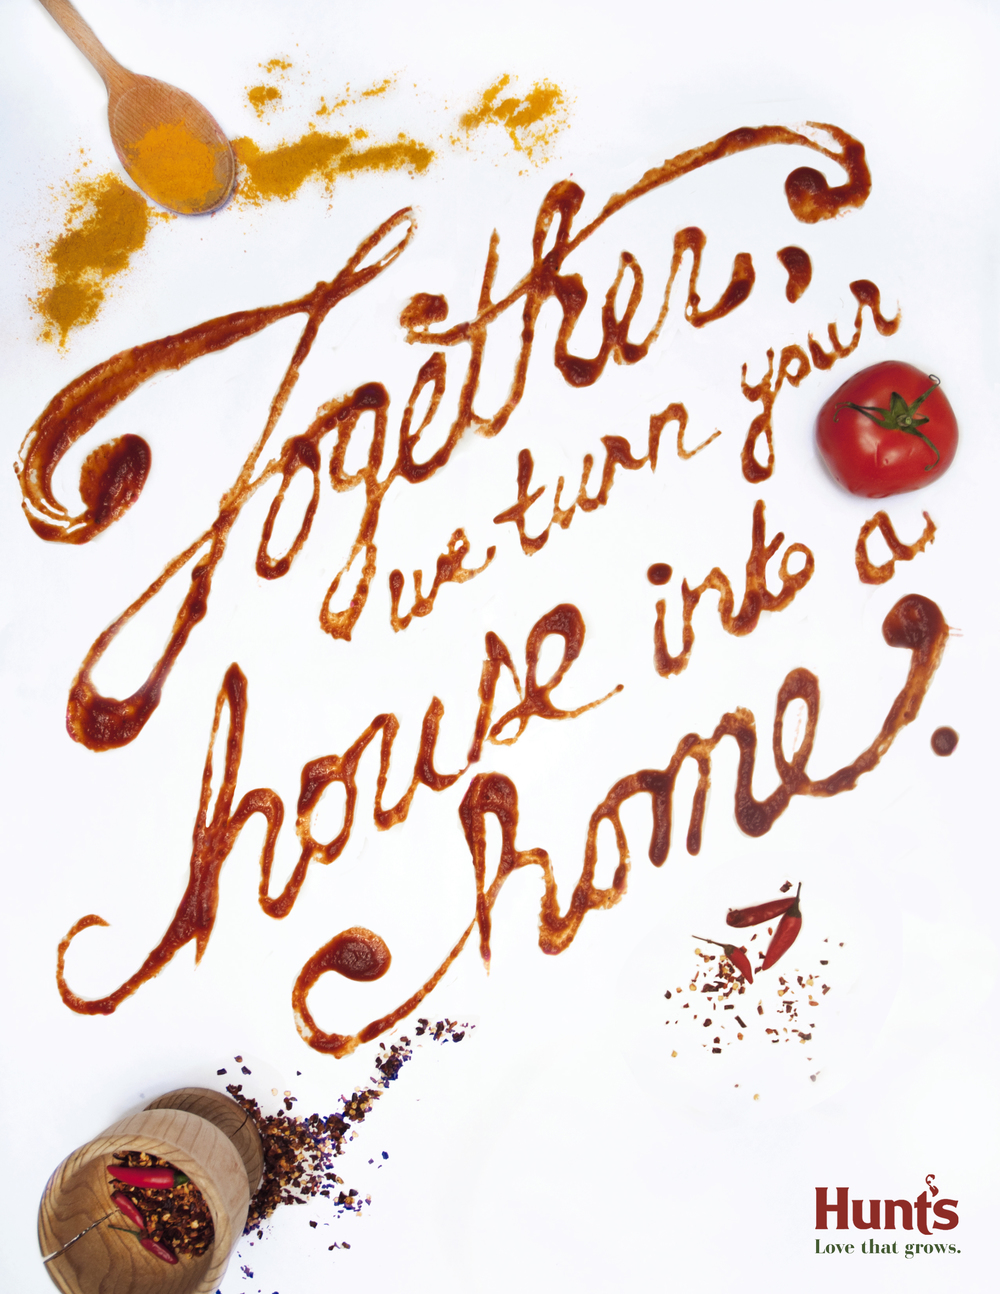 Hunts_PrintAd_Togetherweturnhousehome_FINAL.jpg